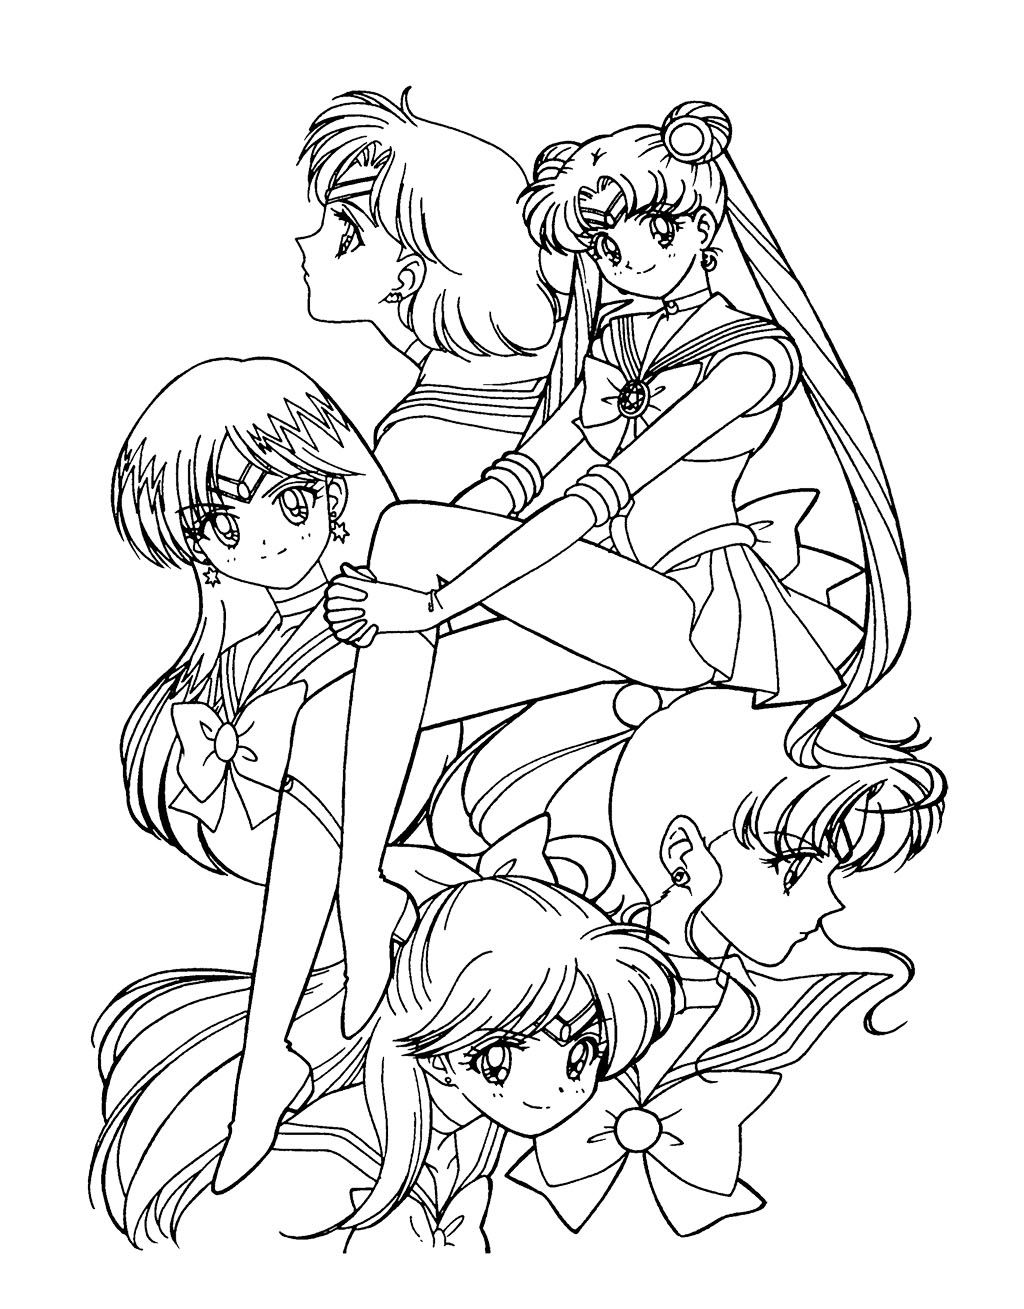 Sailor Moon Was Sitting With Sweet Coloring Page For Kids ...